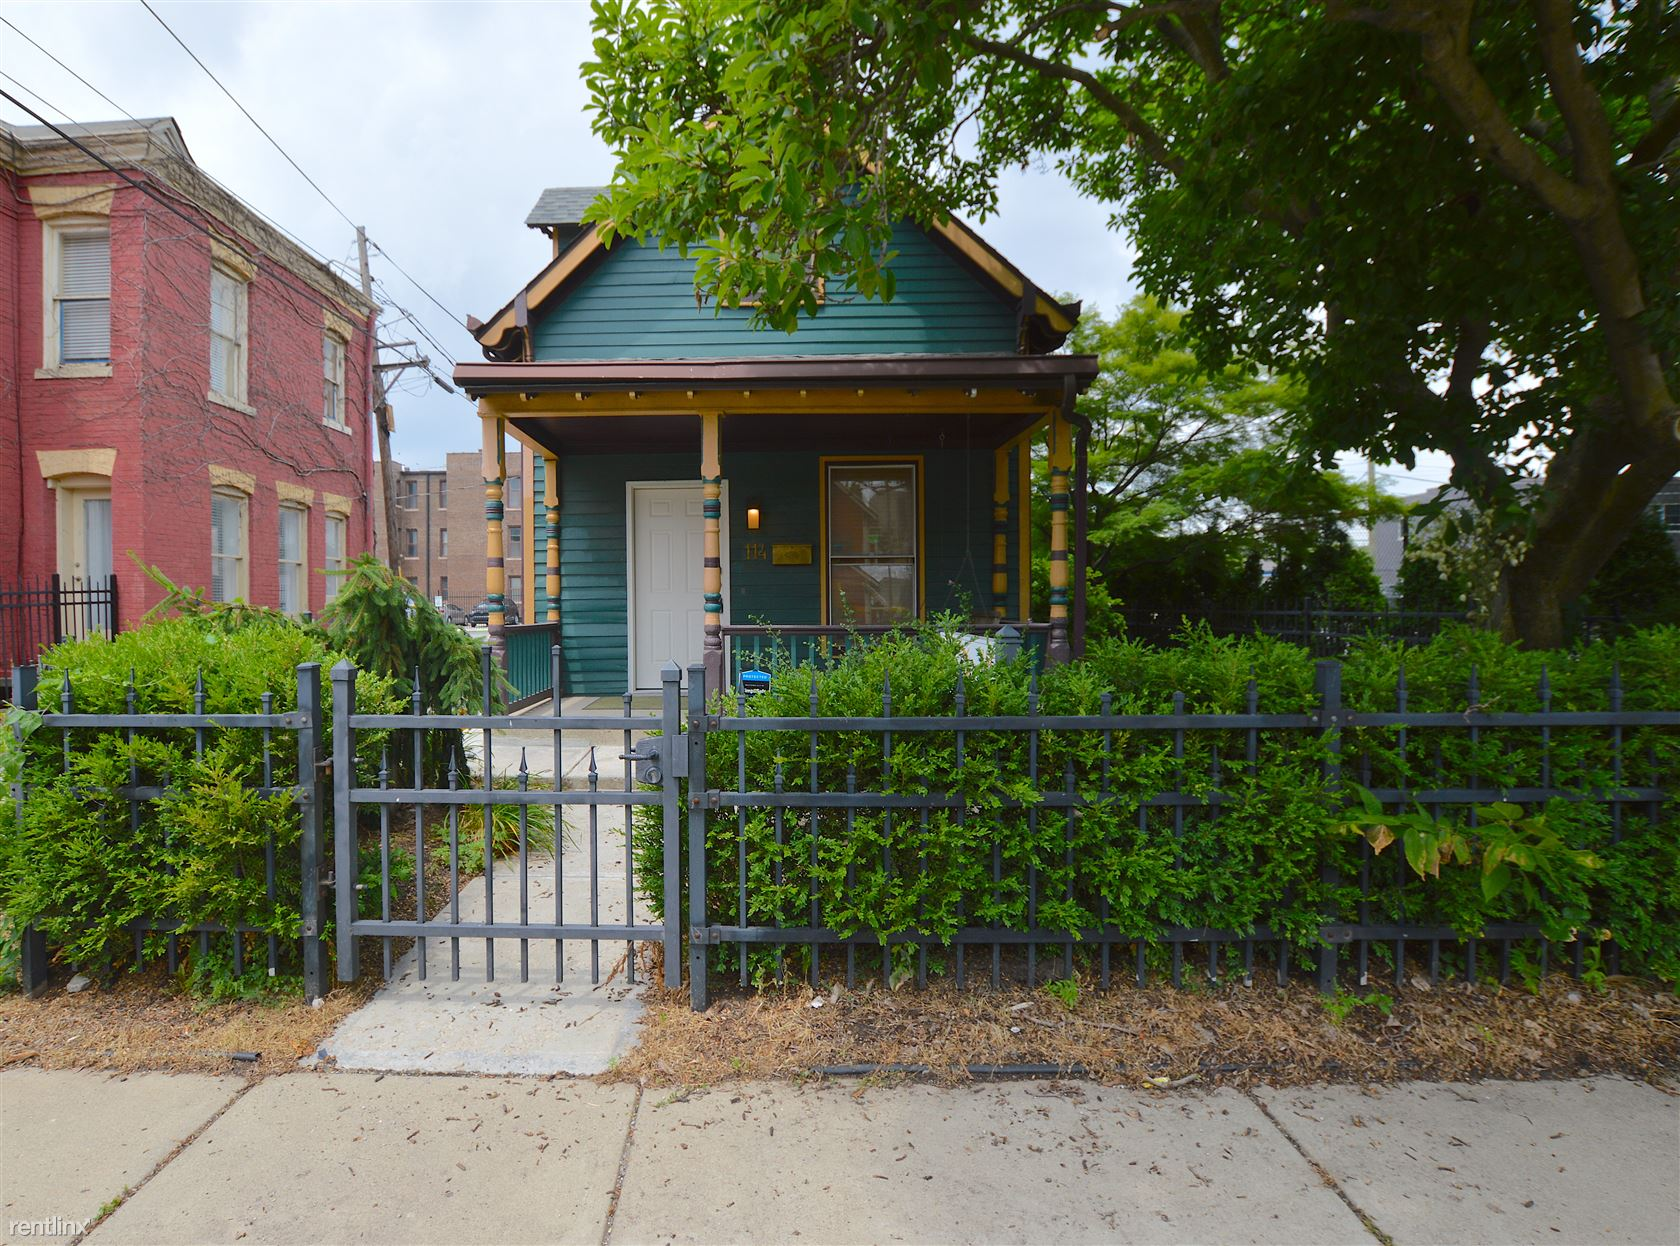 114 E 9th St, Indianapolis, IN - $2,100